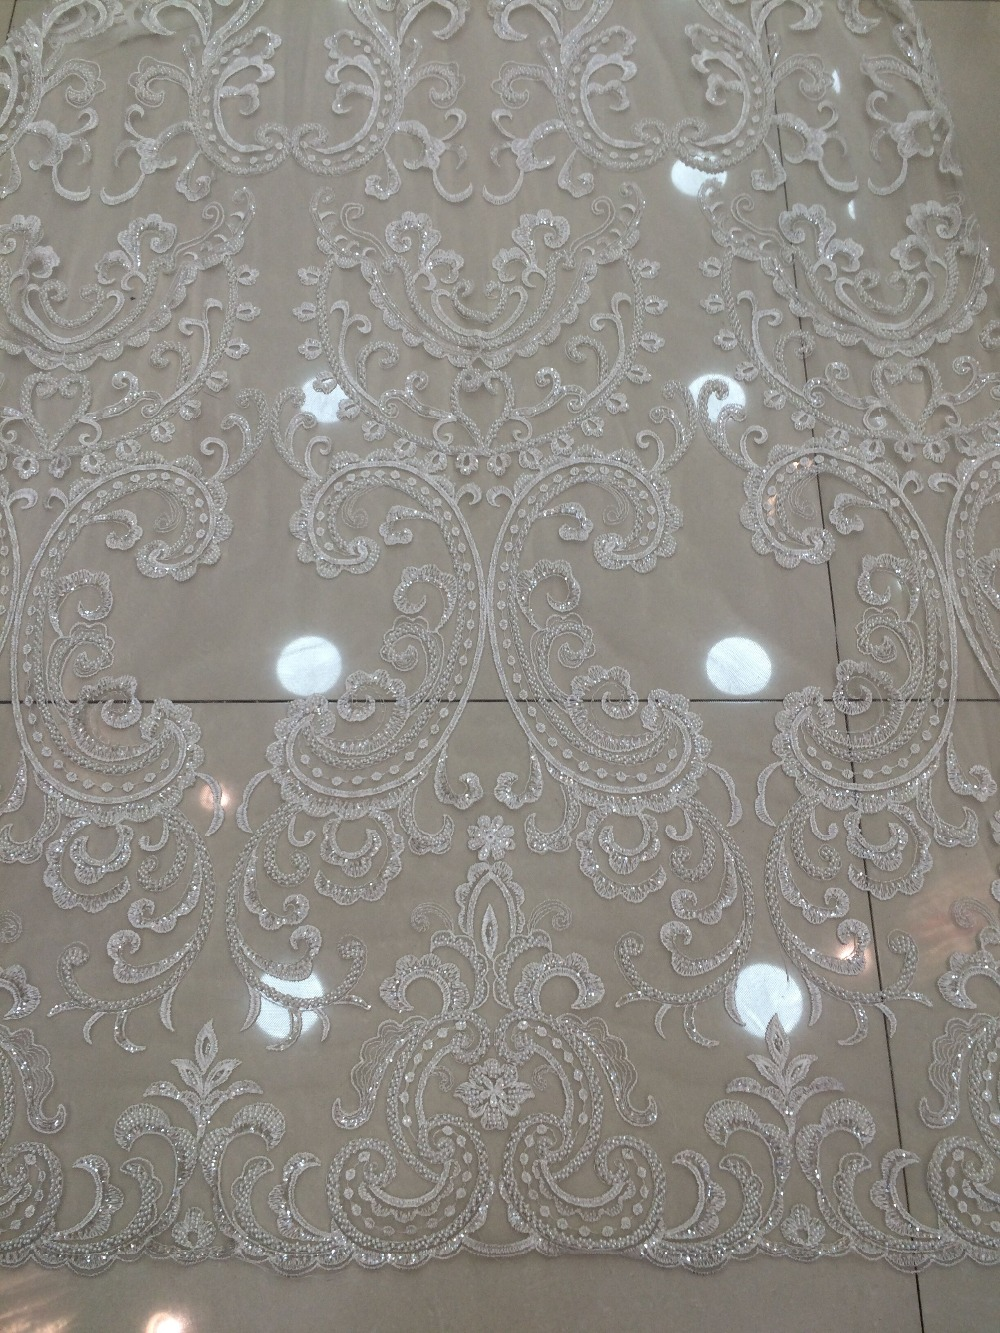 5 Yards Dry lace CGL 110915 with glass beads nigerian Wedding Lace Fabrics top Quality